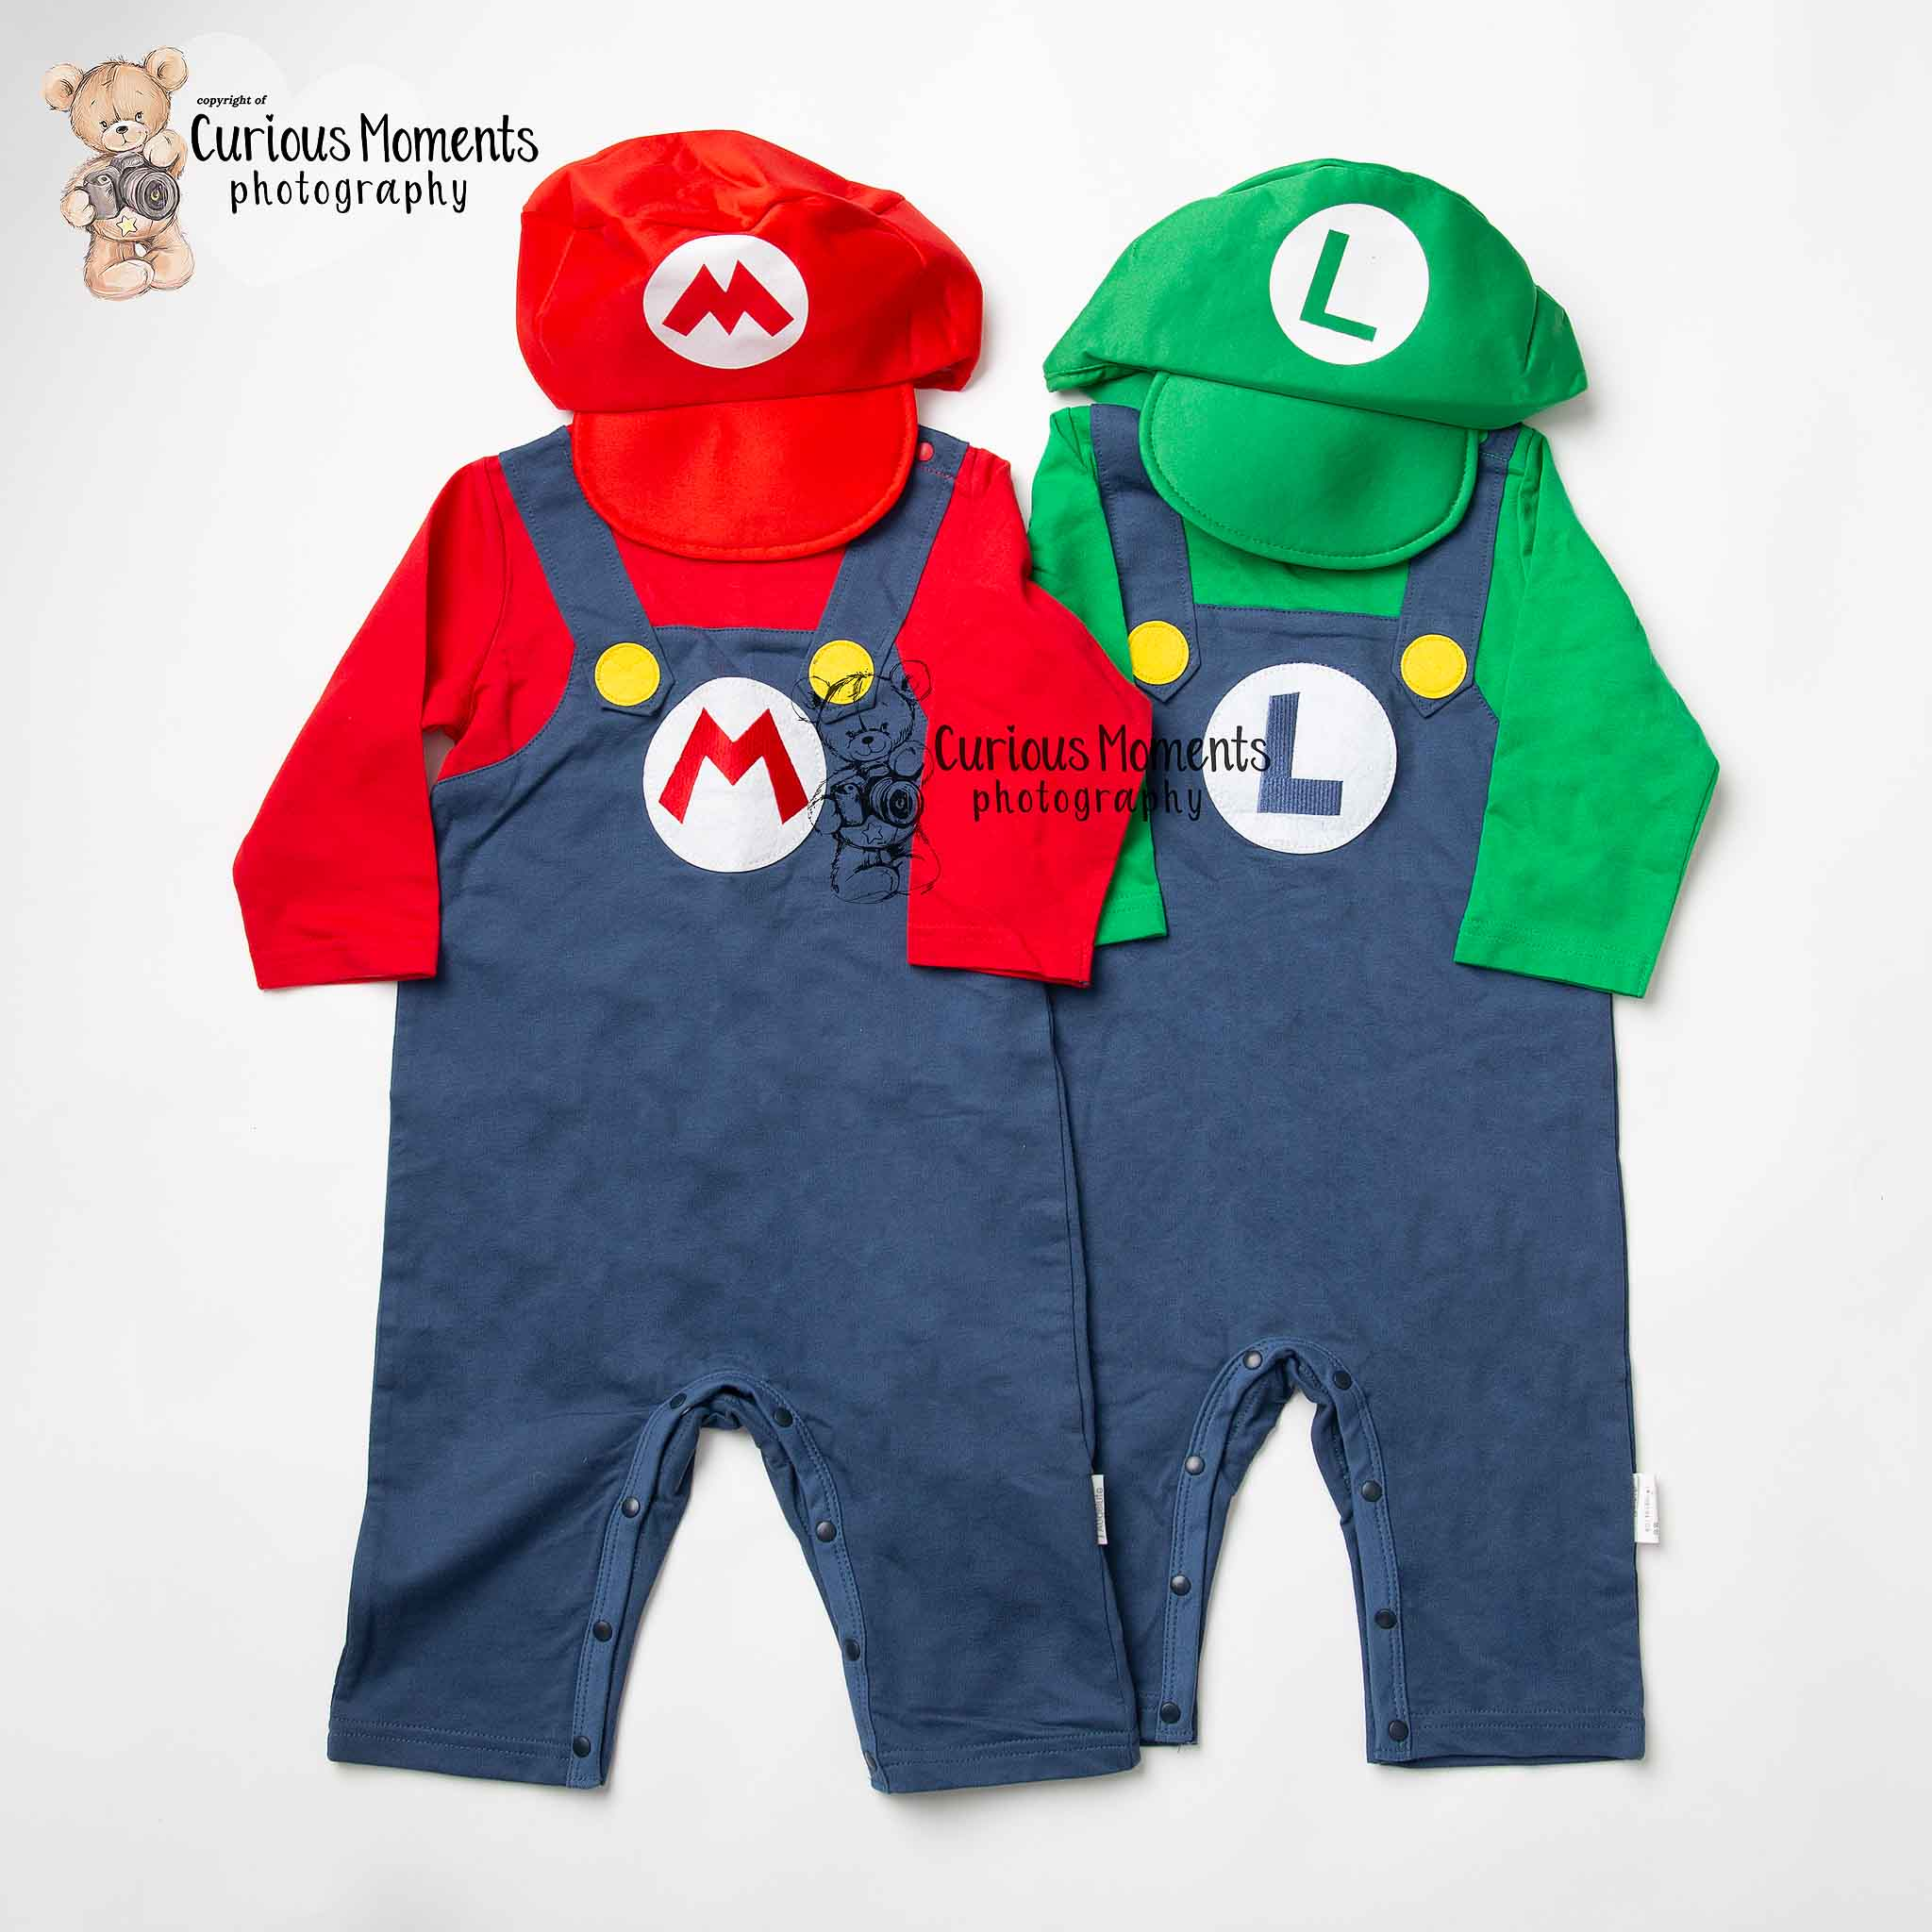 Mario and Luigi outfits for themed cake smash in Carmarthenshire